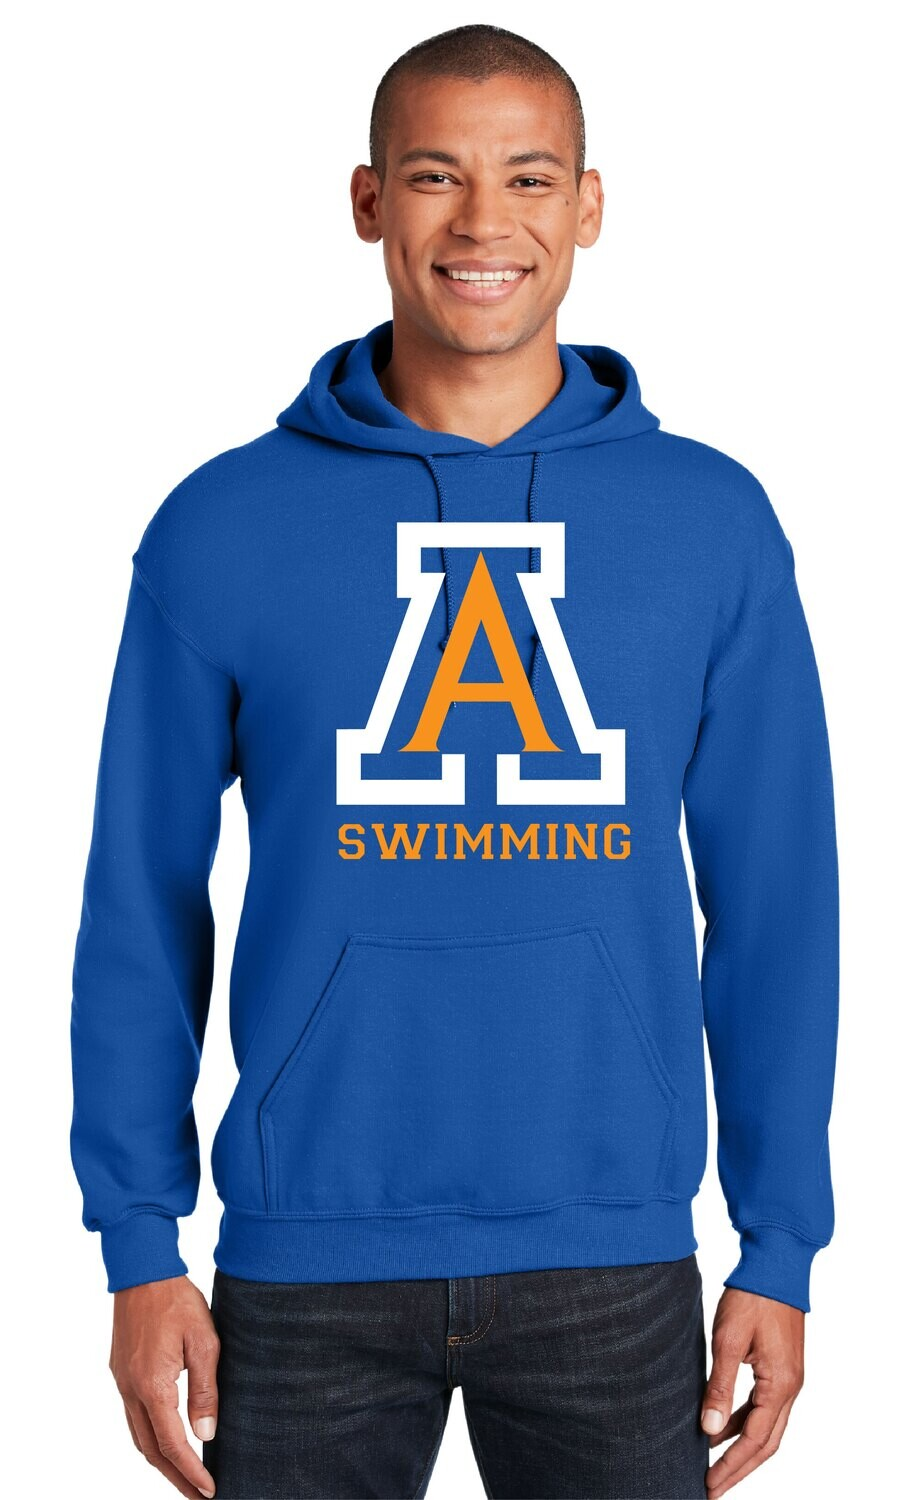 A Swimming Hoodie